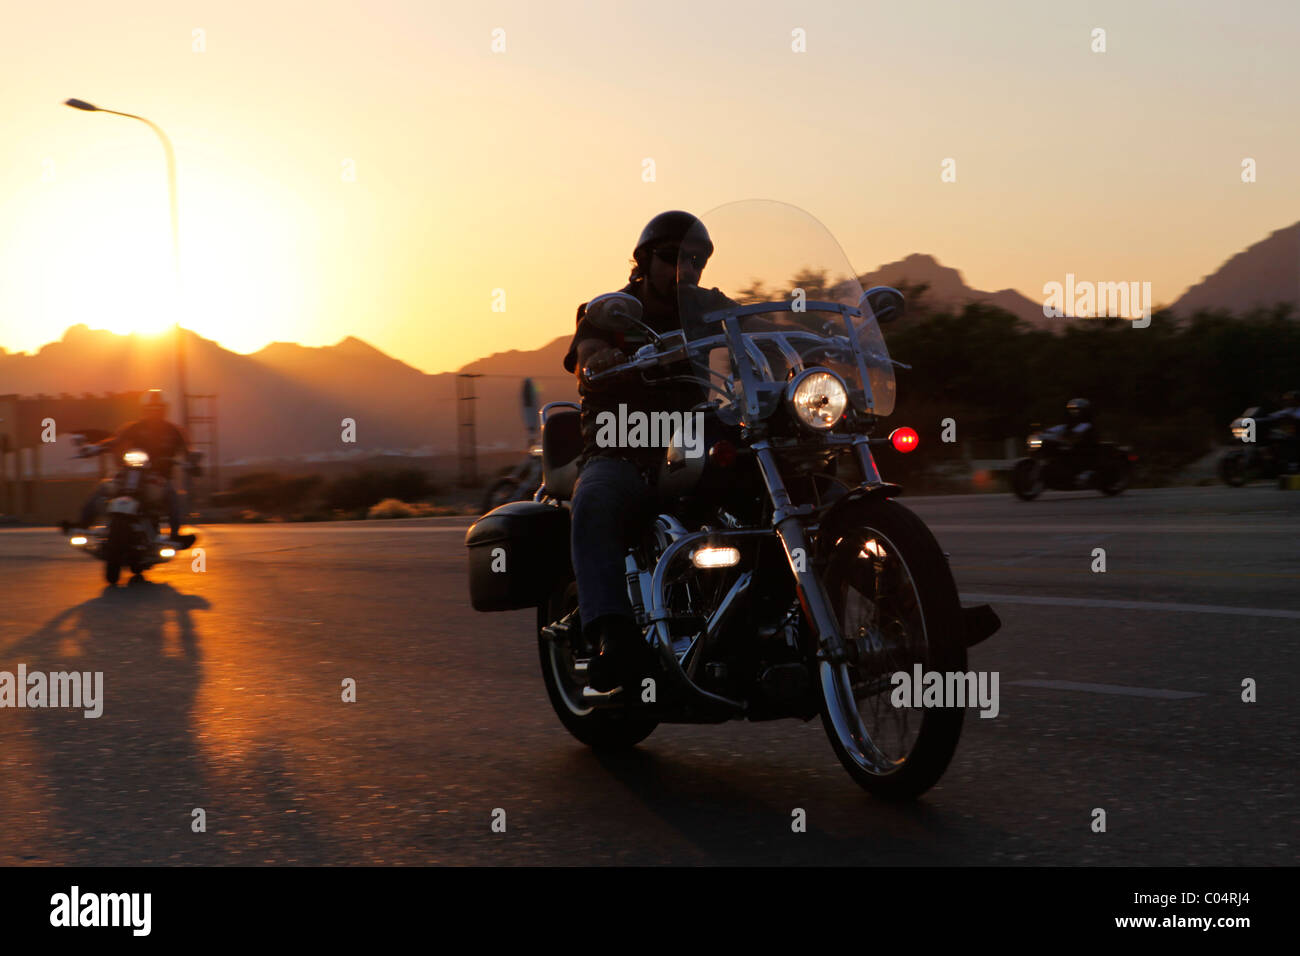 A group of Harley-Davidson bikers rides out into the desert as the sun sets. - Stock Image